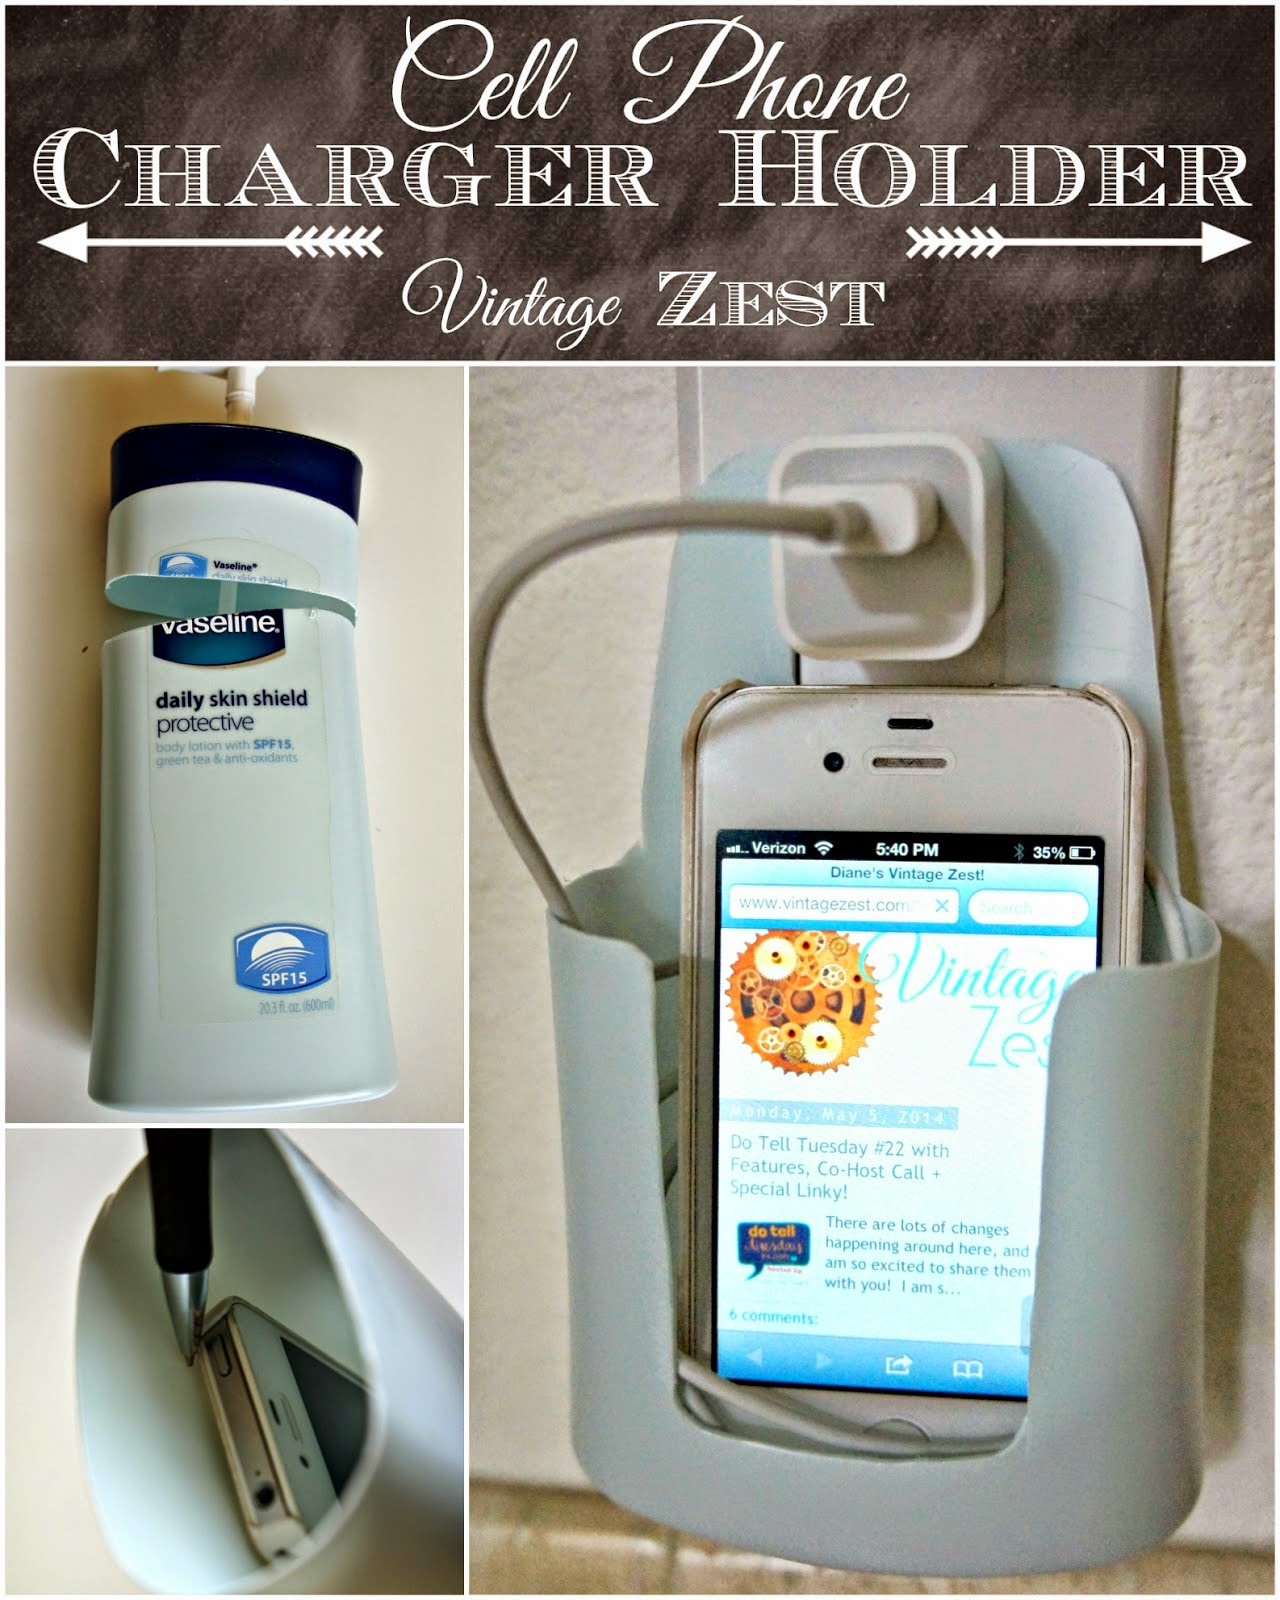 Cell Phone Charger Holder, shared by Vintage Zest